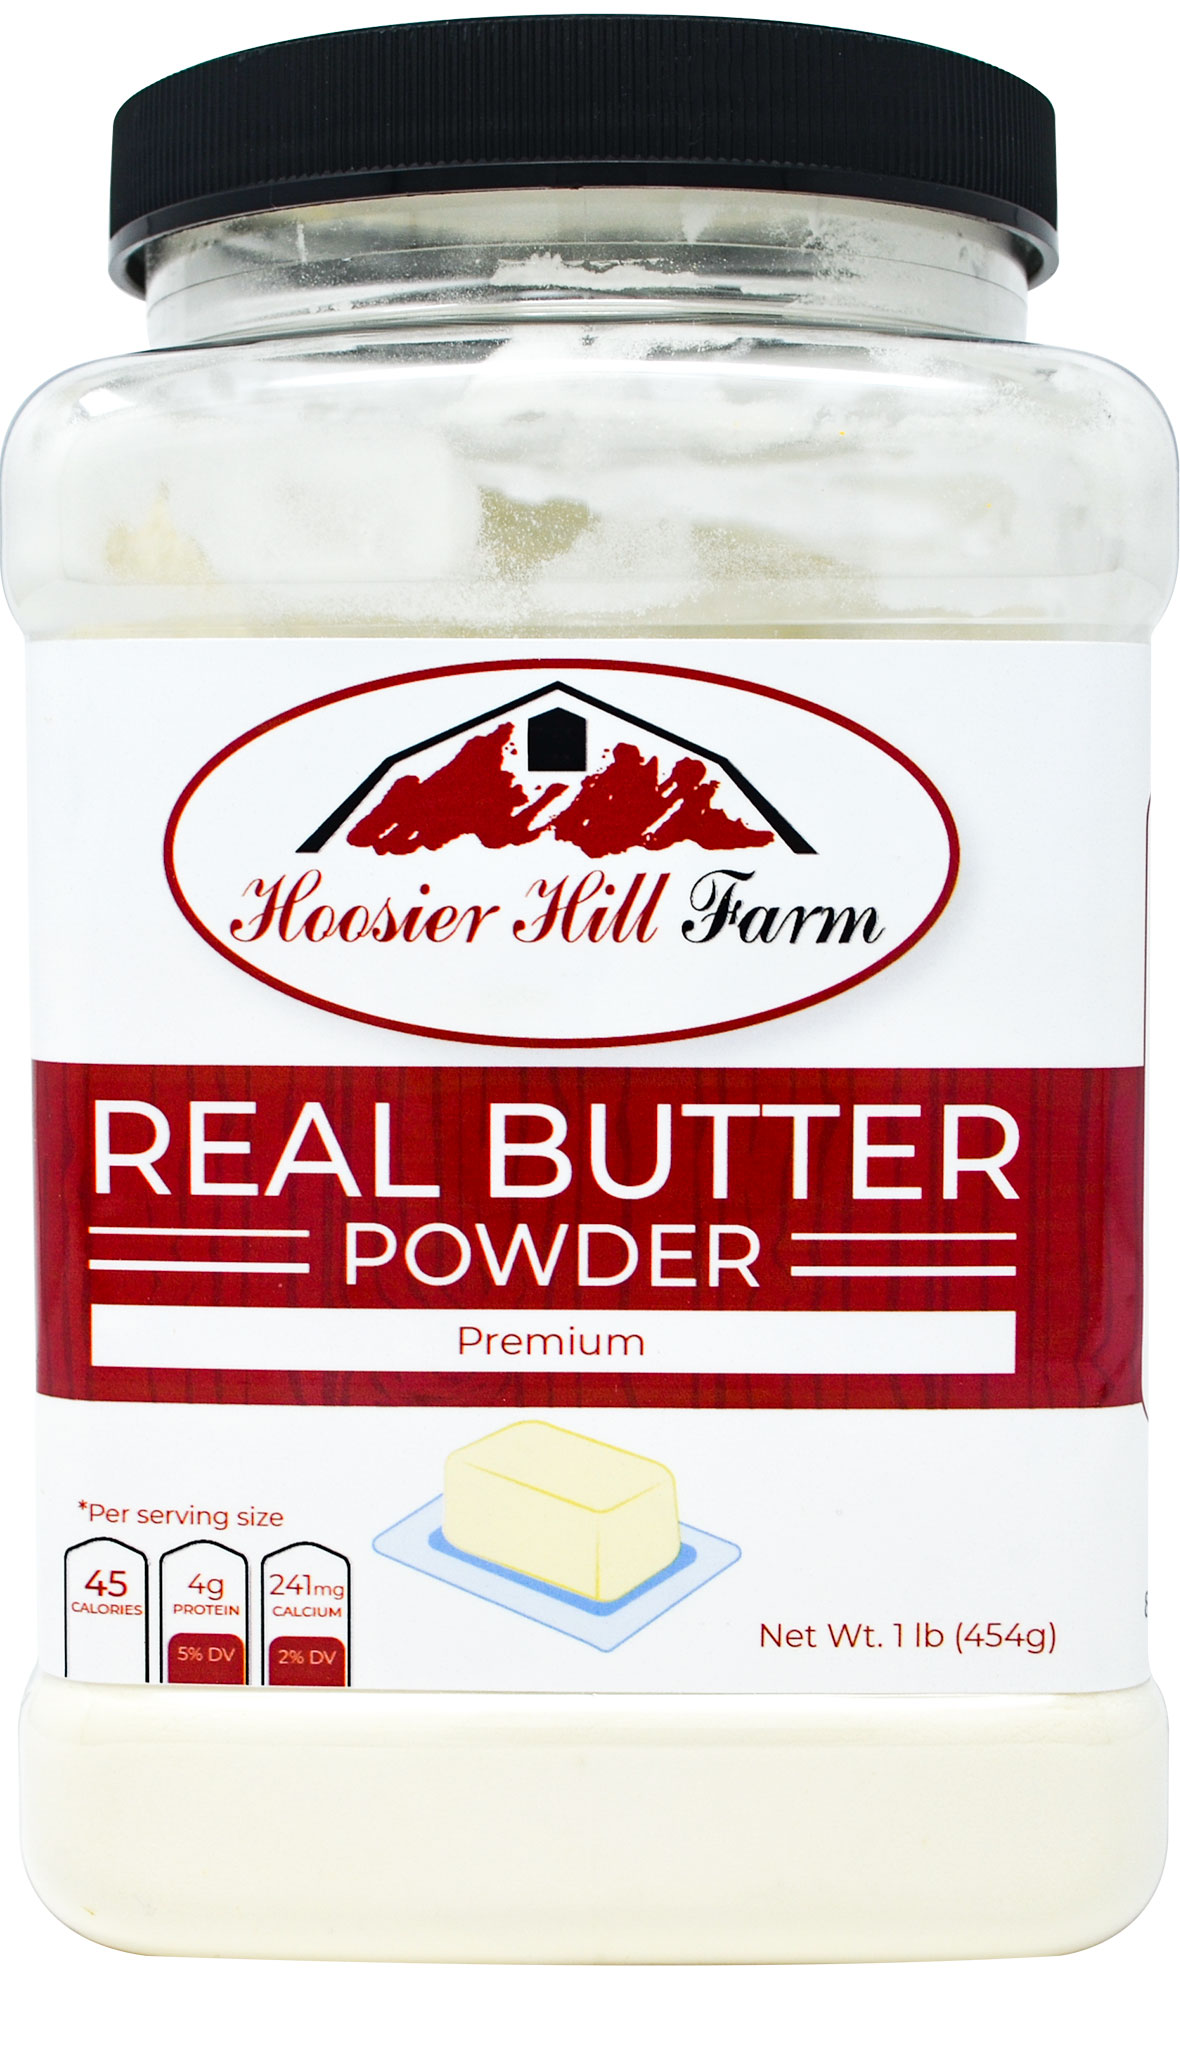 Hoosier Hill Farm Real Butter powder, 1 lb